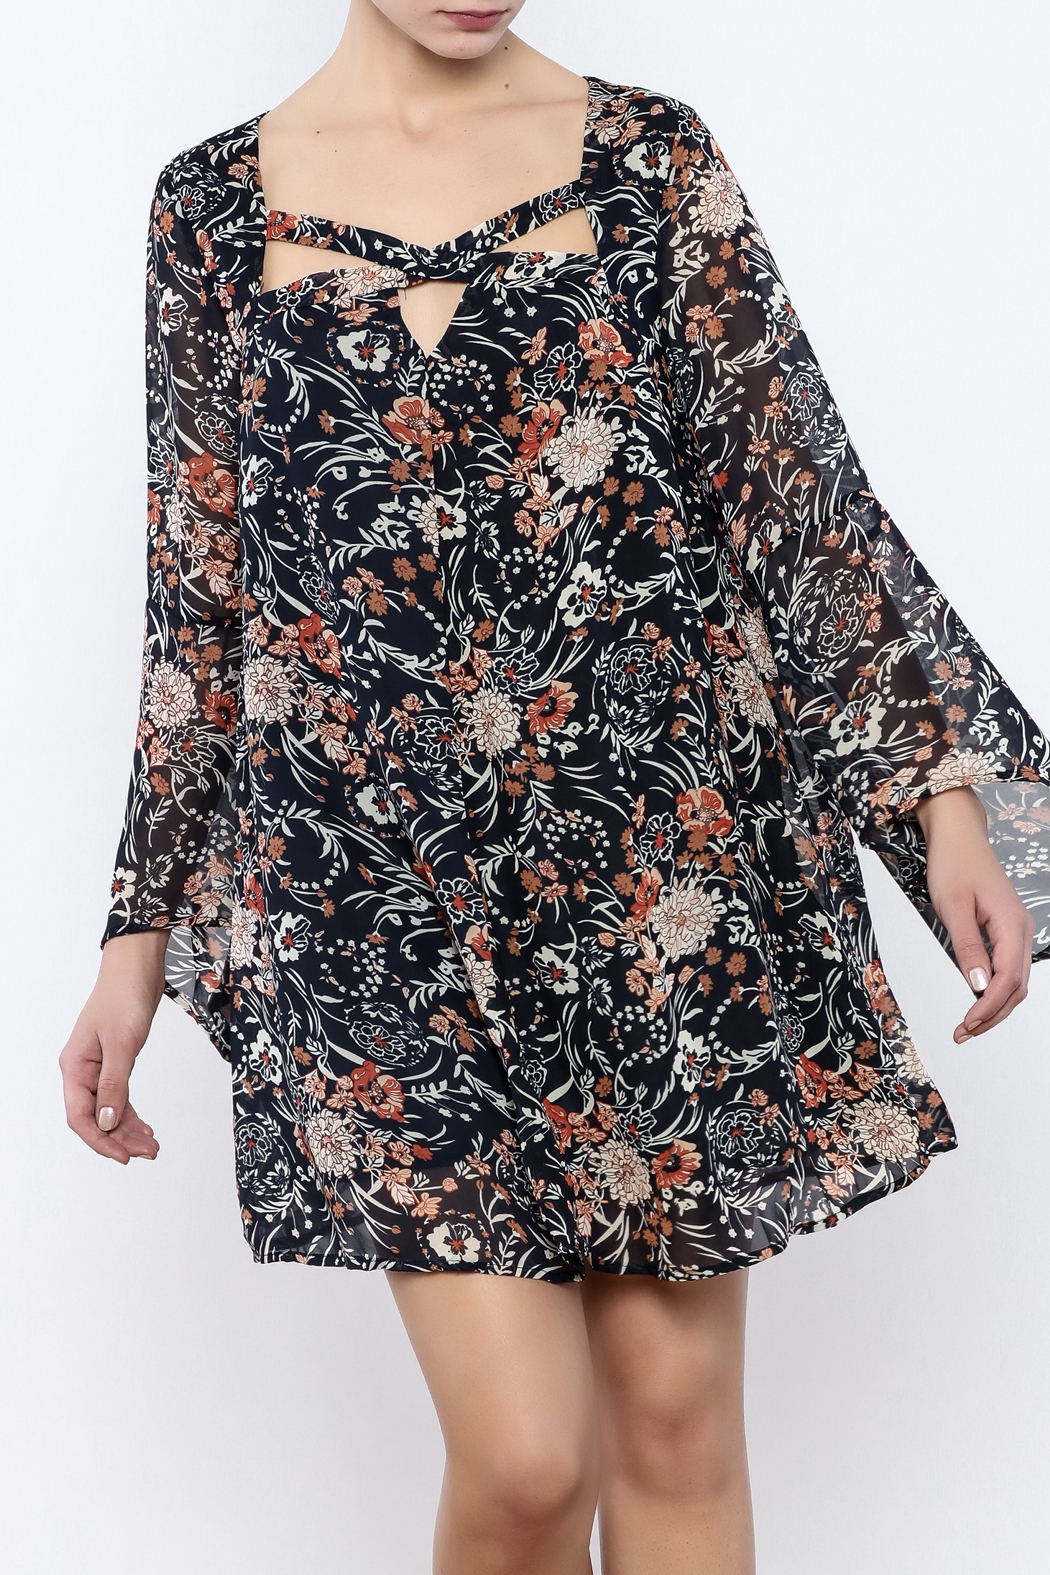 UMGEE Pink Floral Print Criss-Cross Neckline Bell Sleeve Dress